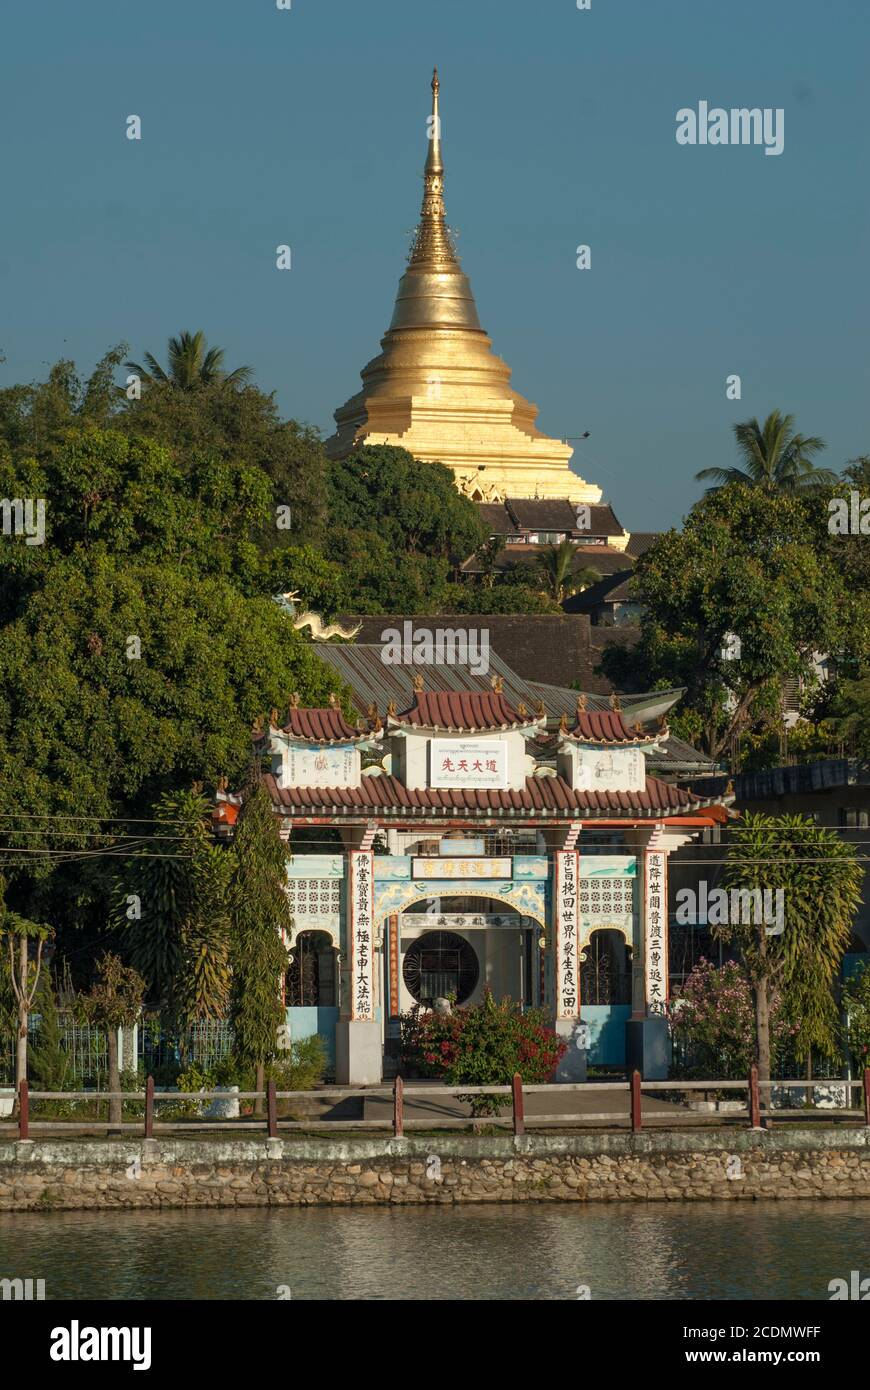 Wat Jom Kham overlooks the Naung Toung Lake and a Chinese temple at the lakeside, at Kengtung, Shan State, Myanmar (Burma) Stock Photo